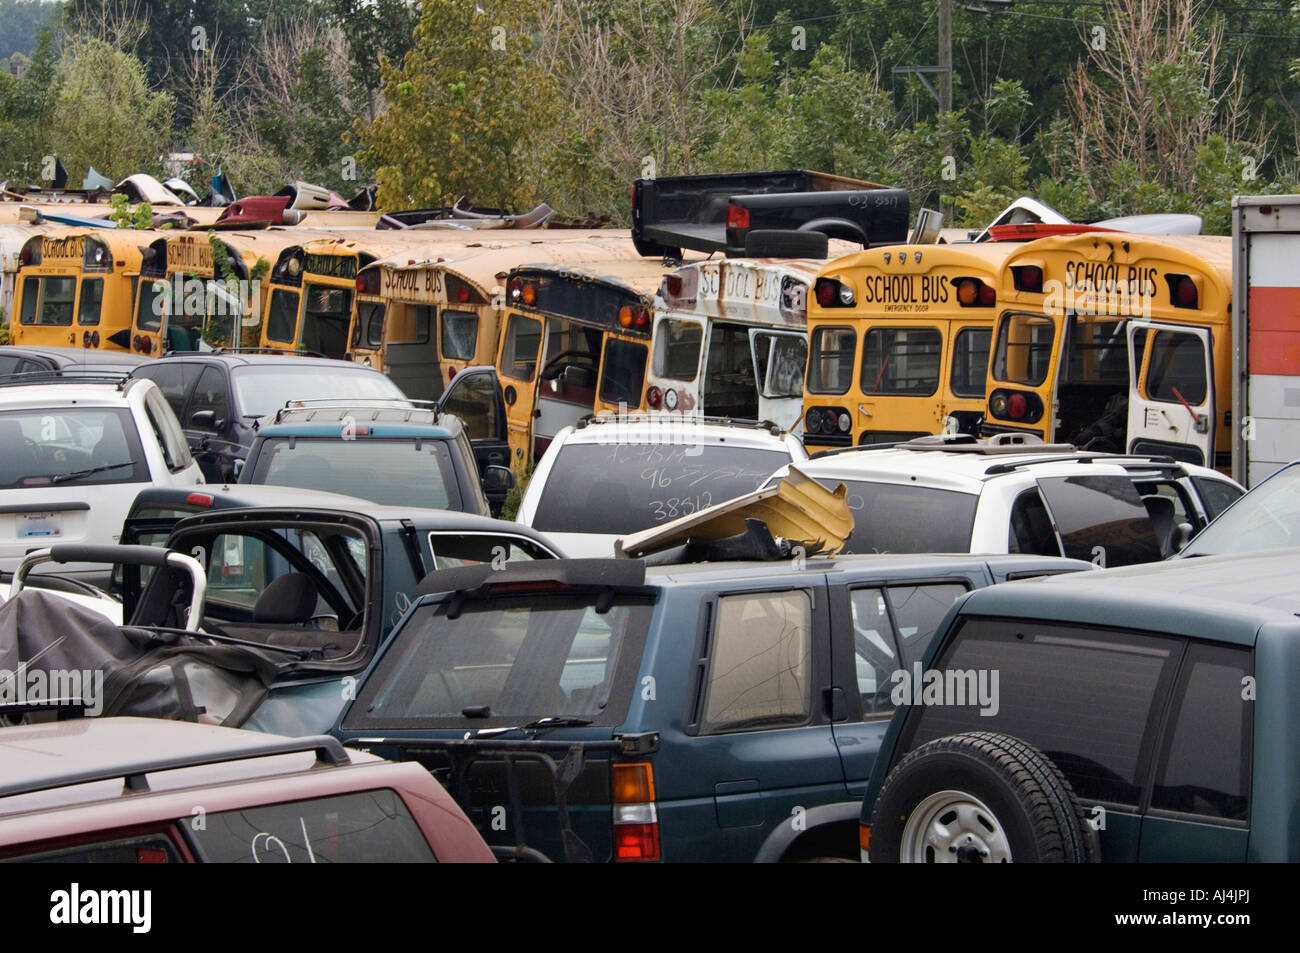 Vehicles including School Buses in Auto Salvage Yard Southern ...